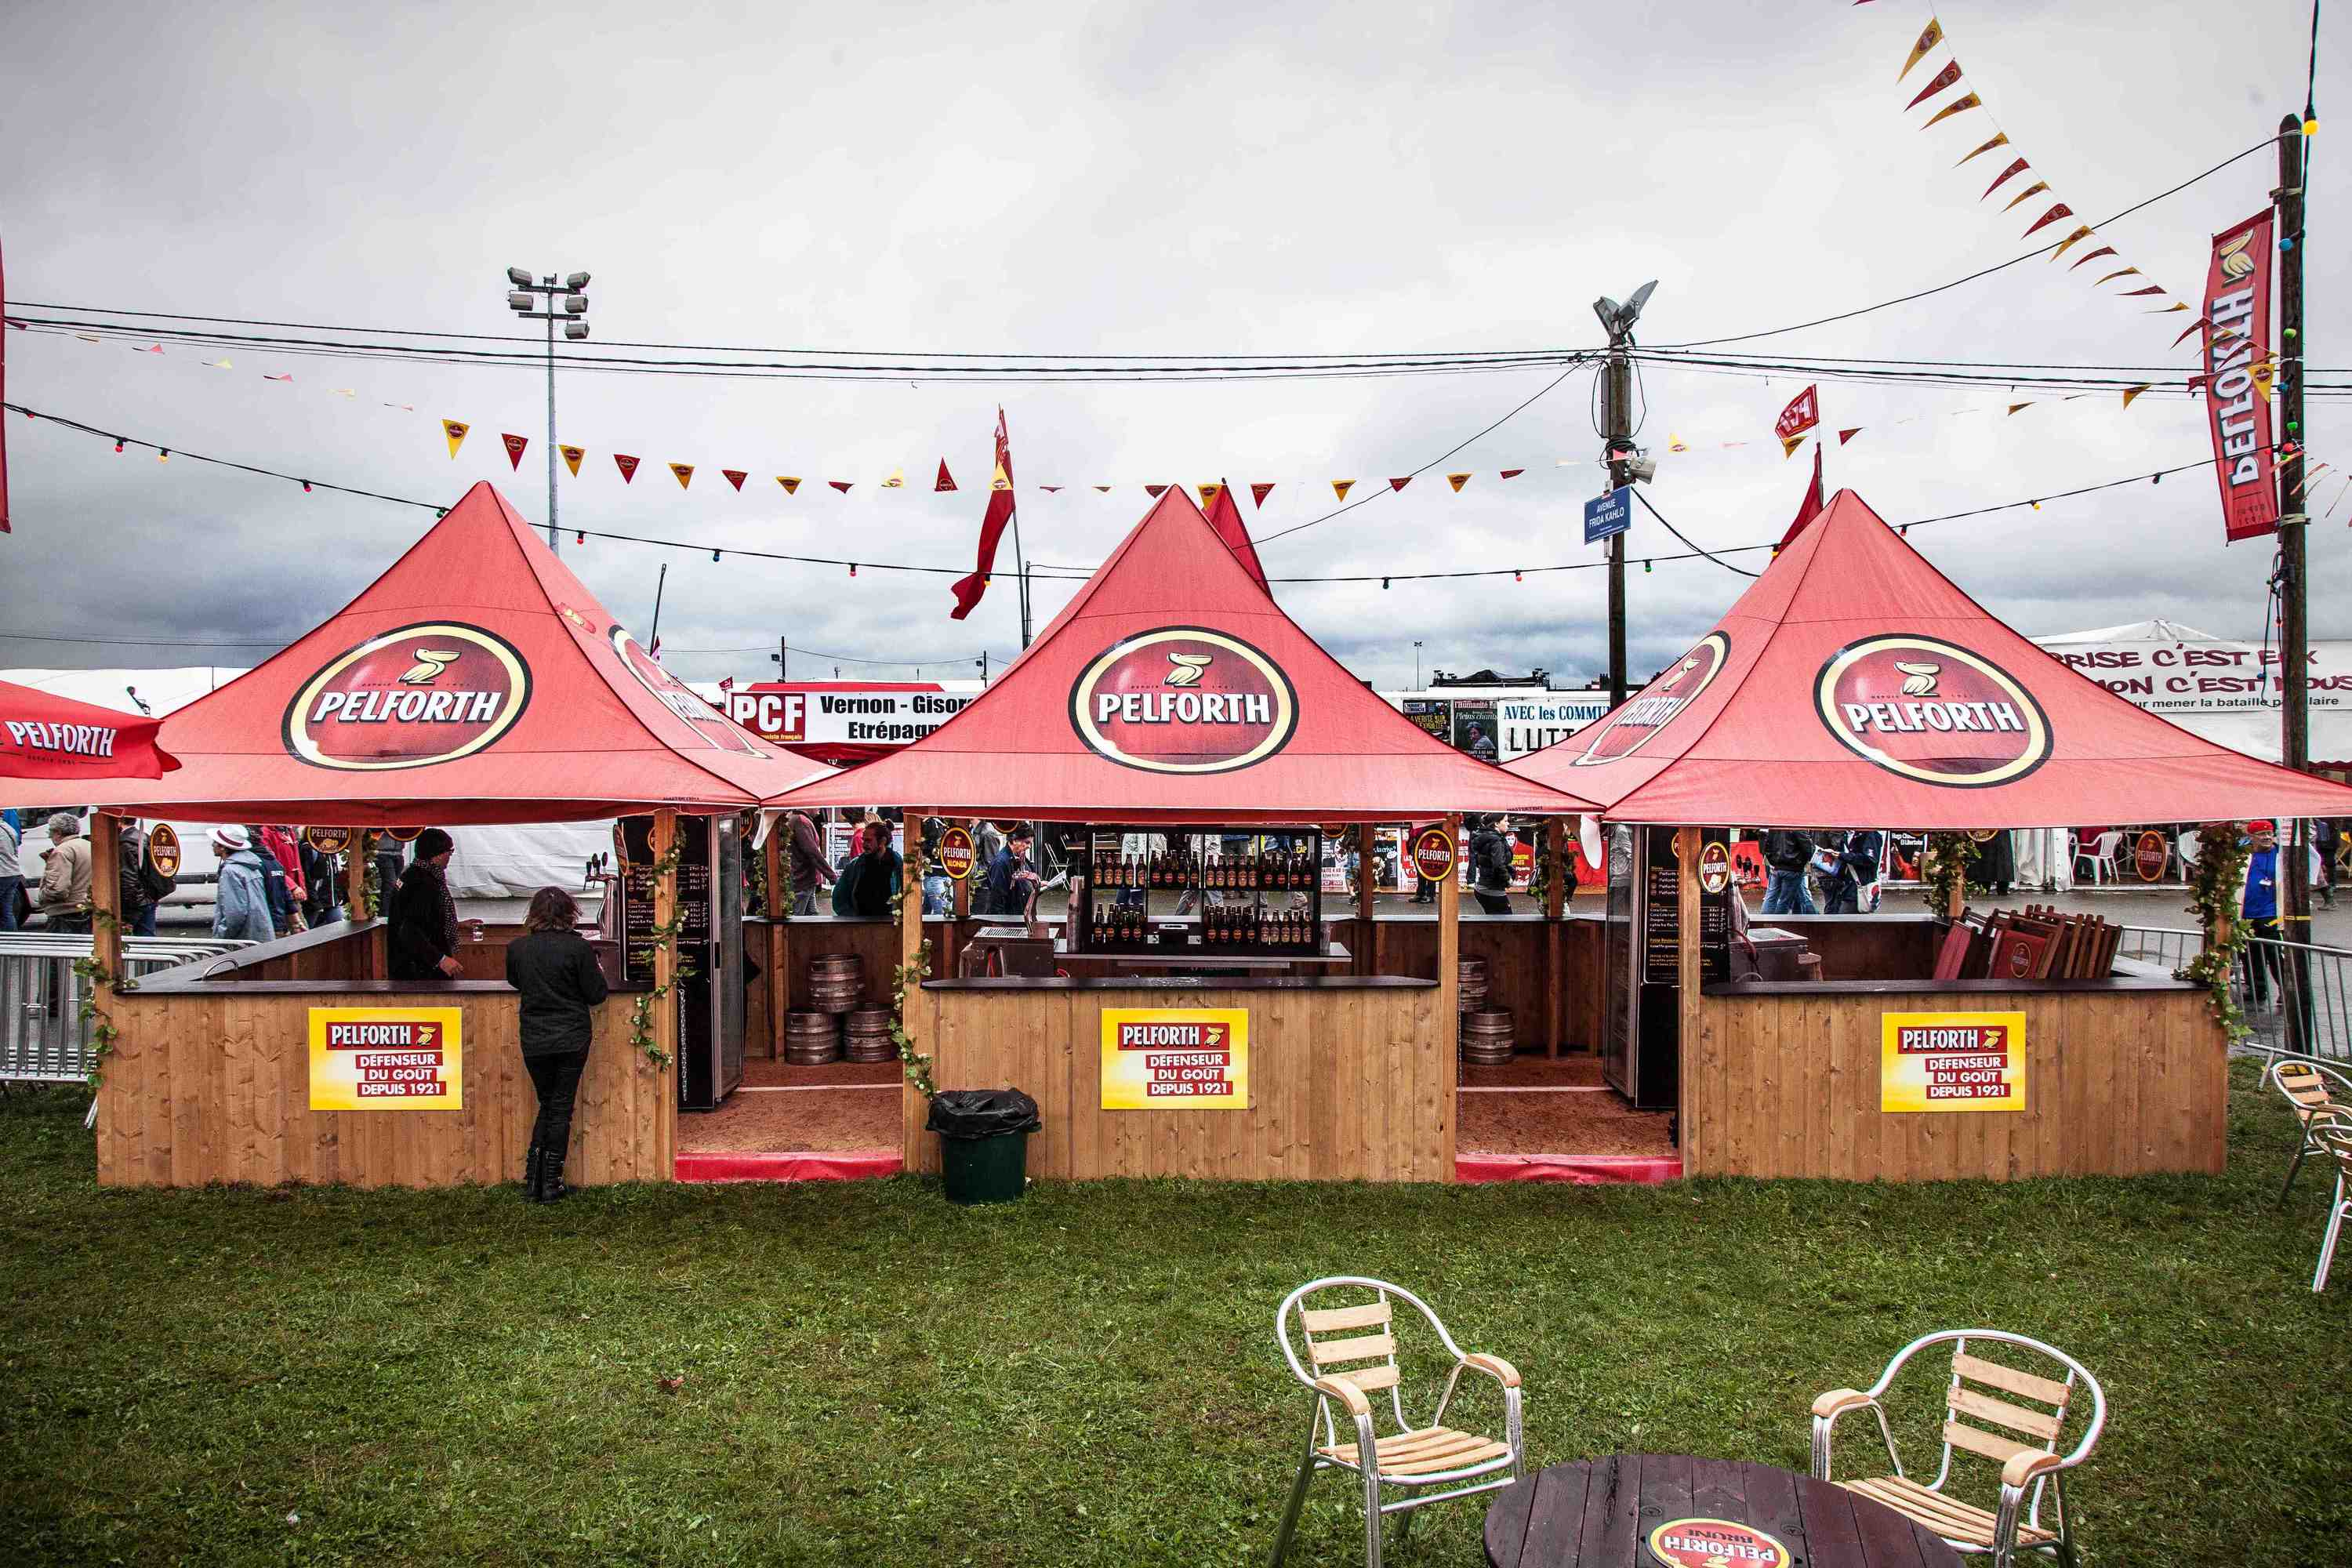 <p>Tent &#8211; Shop &#8211; Pelforth Bar</p> <p>3m x 3m Shop 4 Awnings (4.3m x 4.3m)</p> <p>Brilliant event bar produced for Pelforth Beer. Tents joined together with raingutters and counter system.</p>